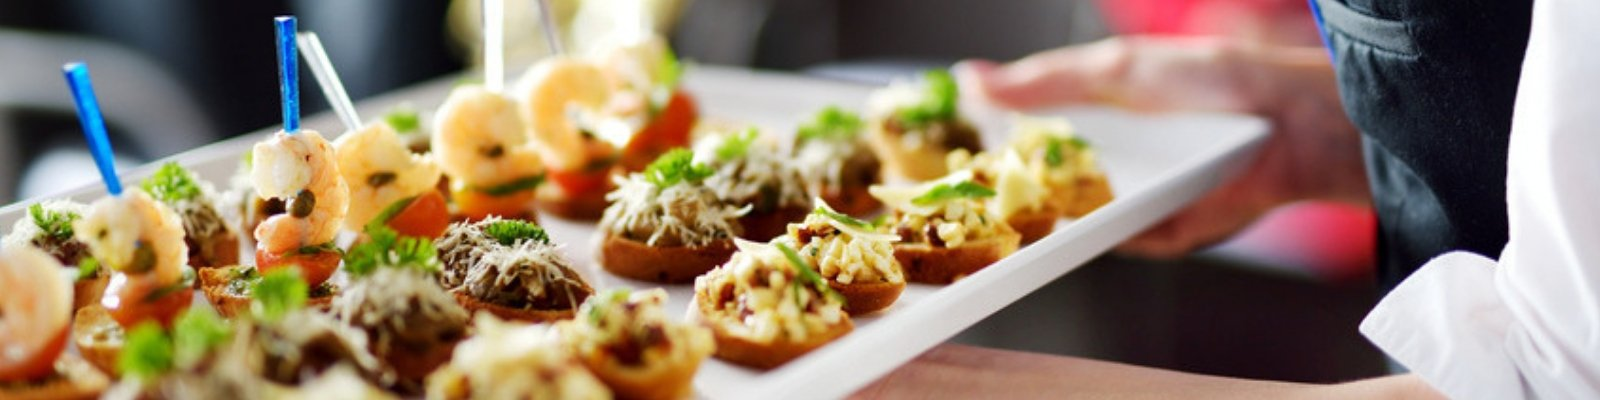 fresh & joy events - Canapes in Hannover